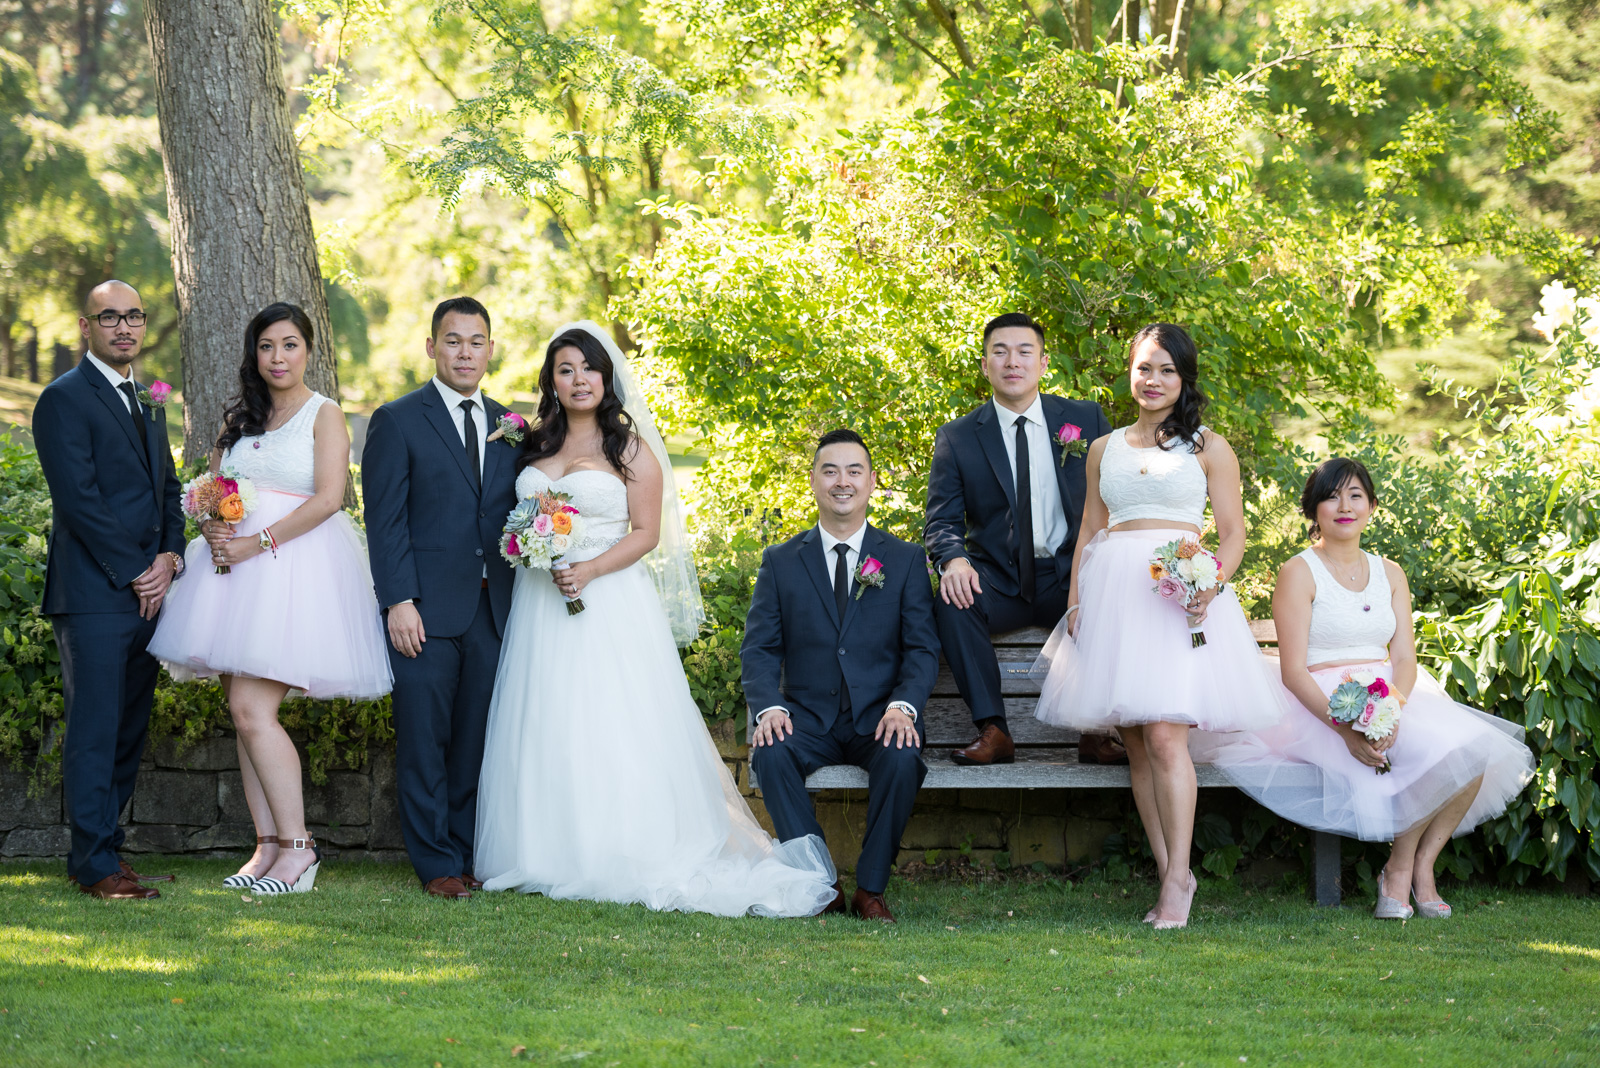 victoria-wedding-photographers-shaughnessy-restaurant-wedding-vandusen-gardens-wedding-19.jpg